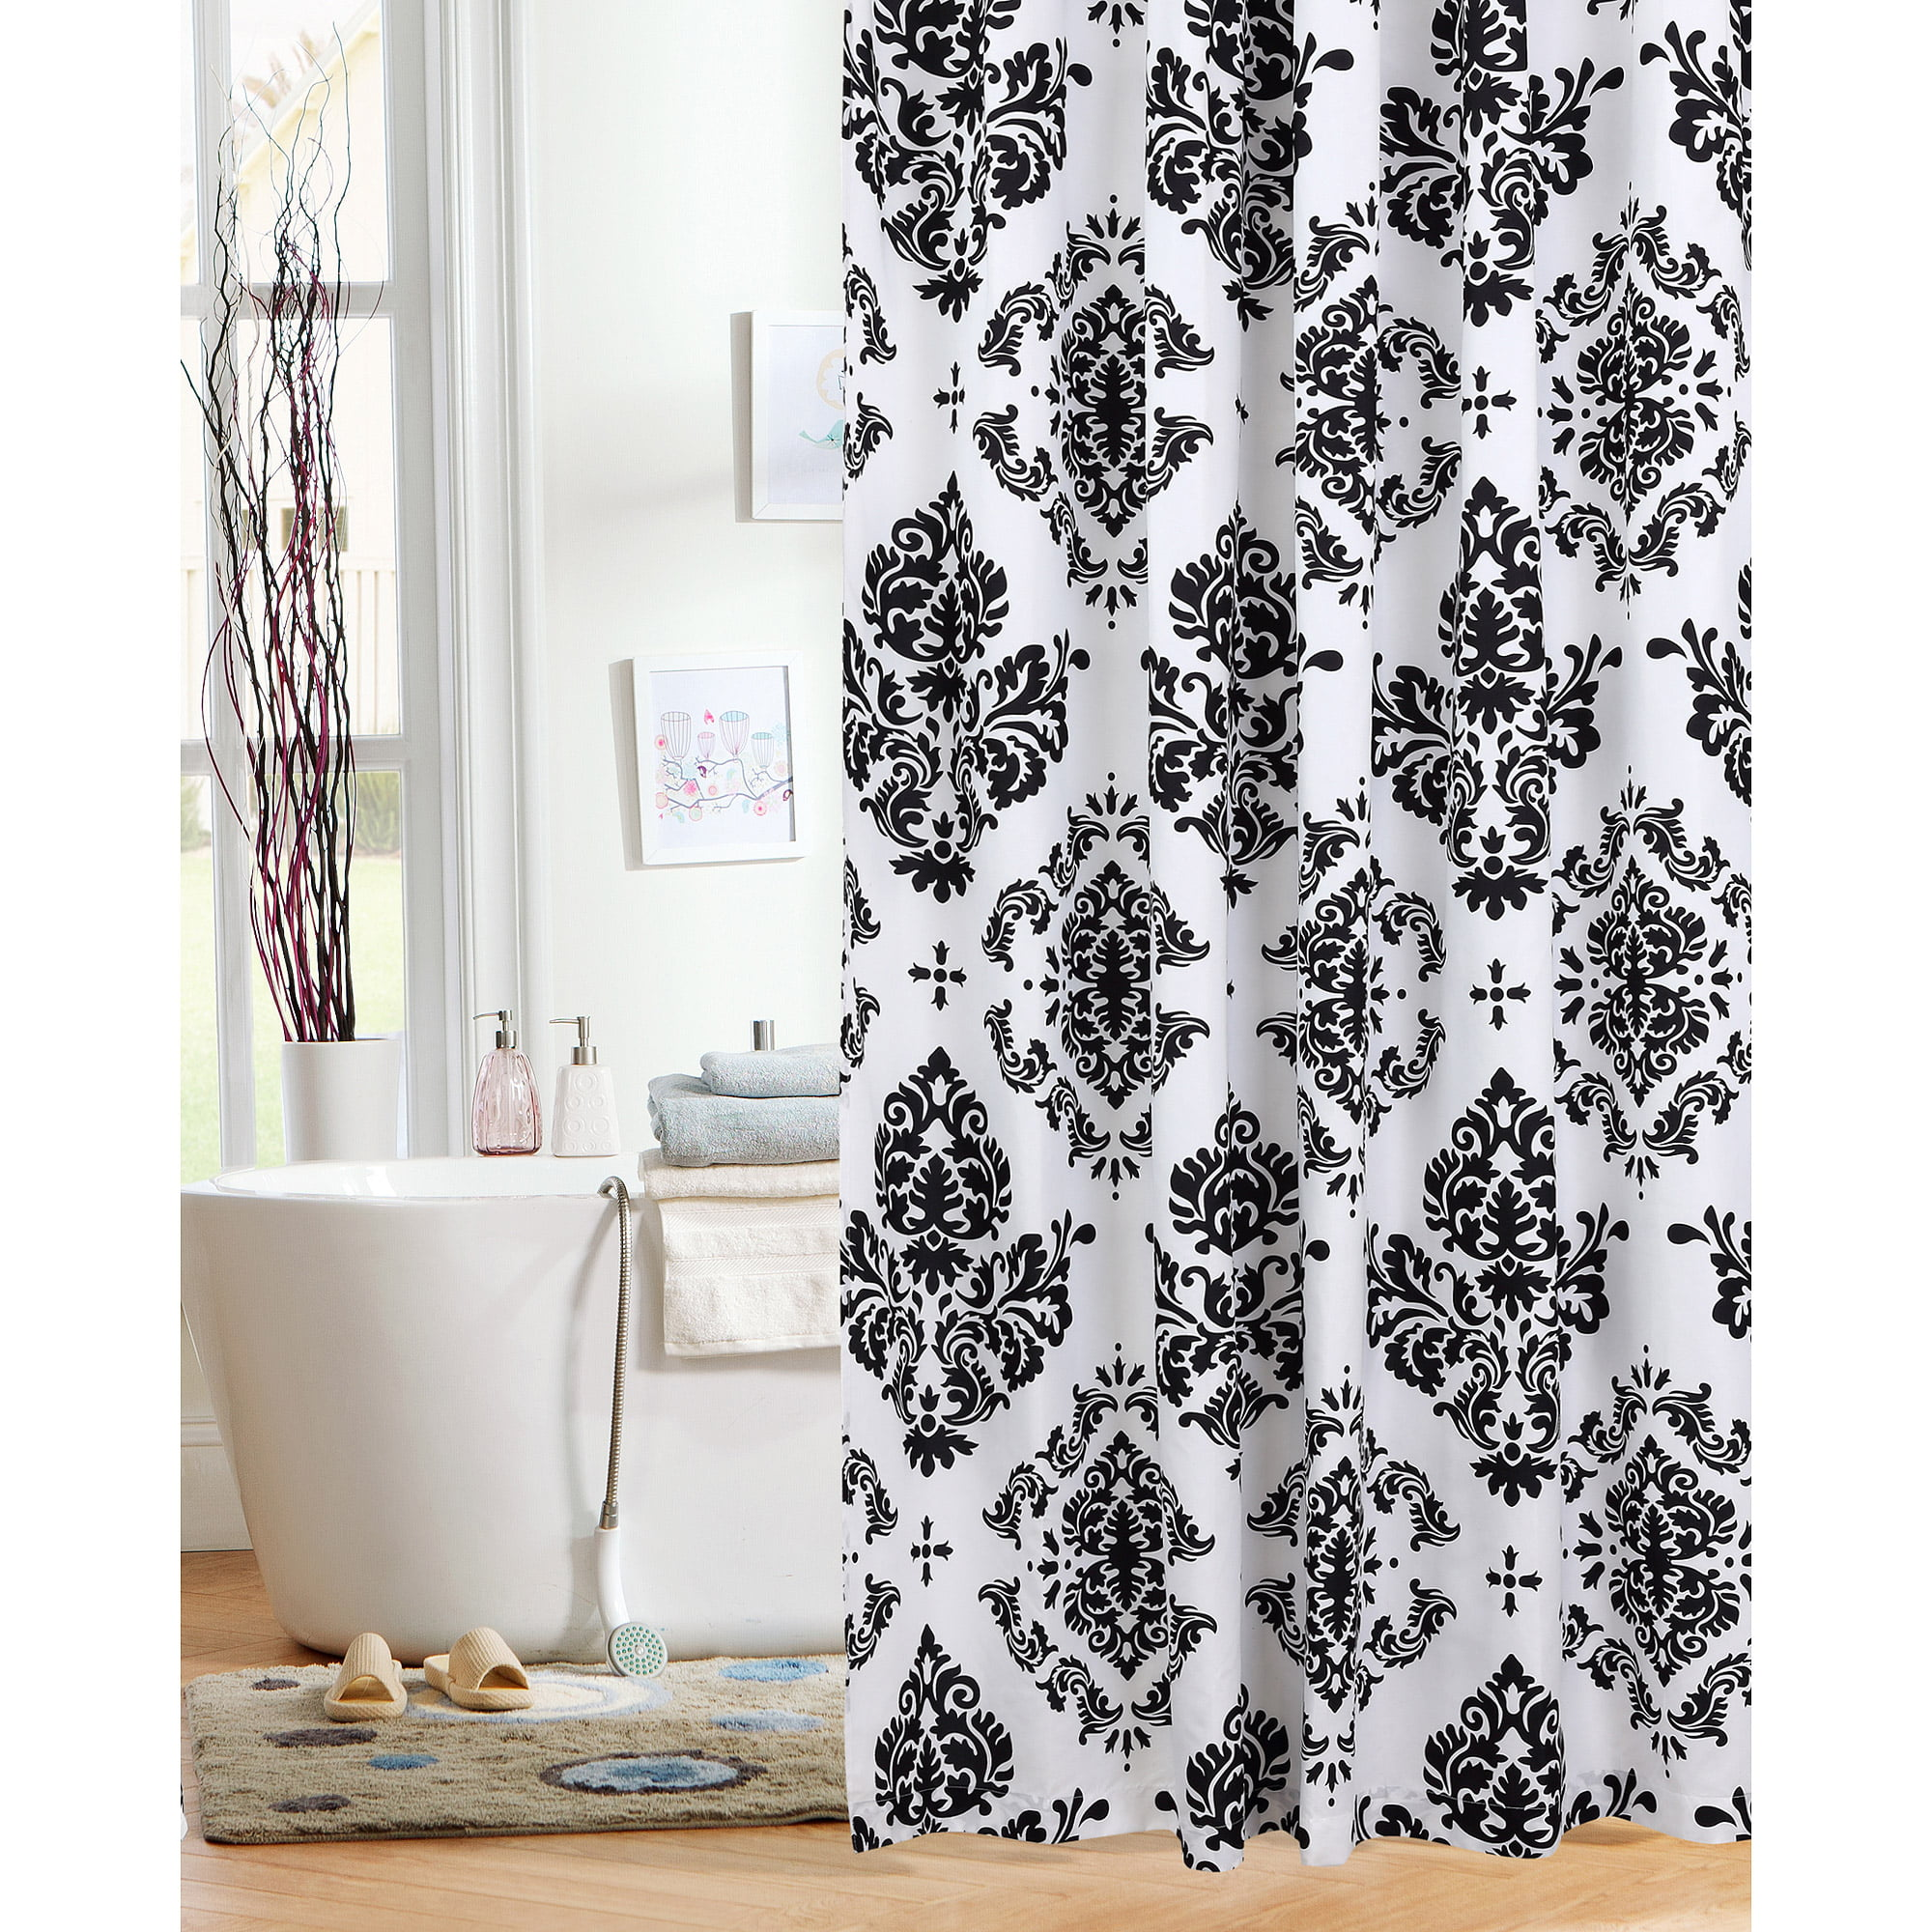 Bathroom curtains from walmart - Mainstays Classic Noir 70 X 72 Fabric Shower Curtain Black